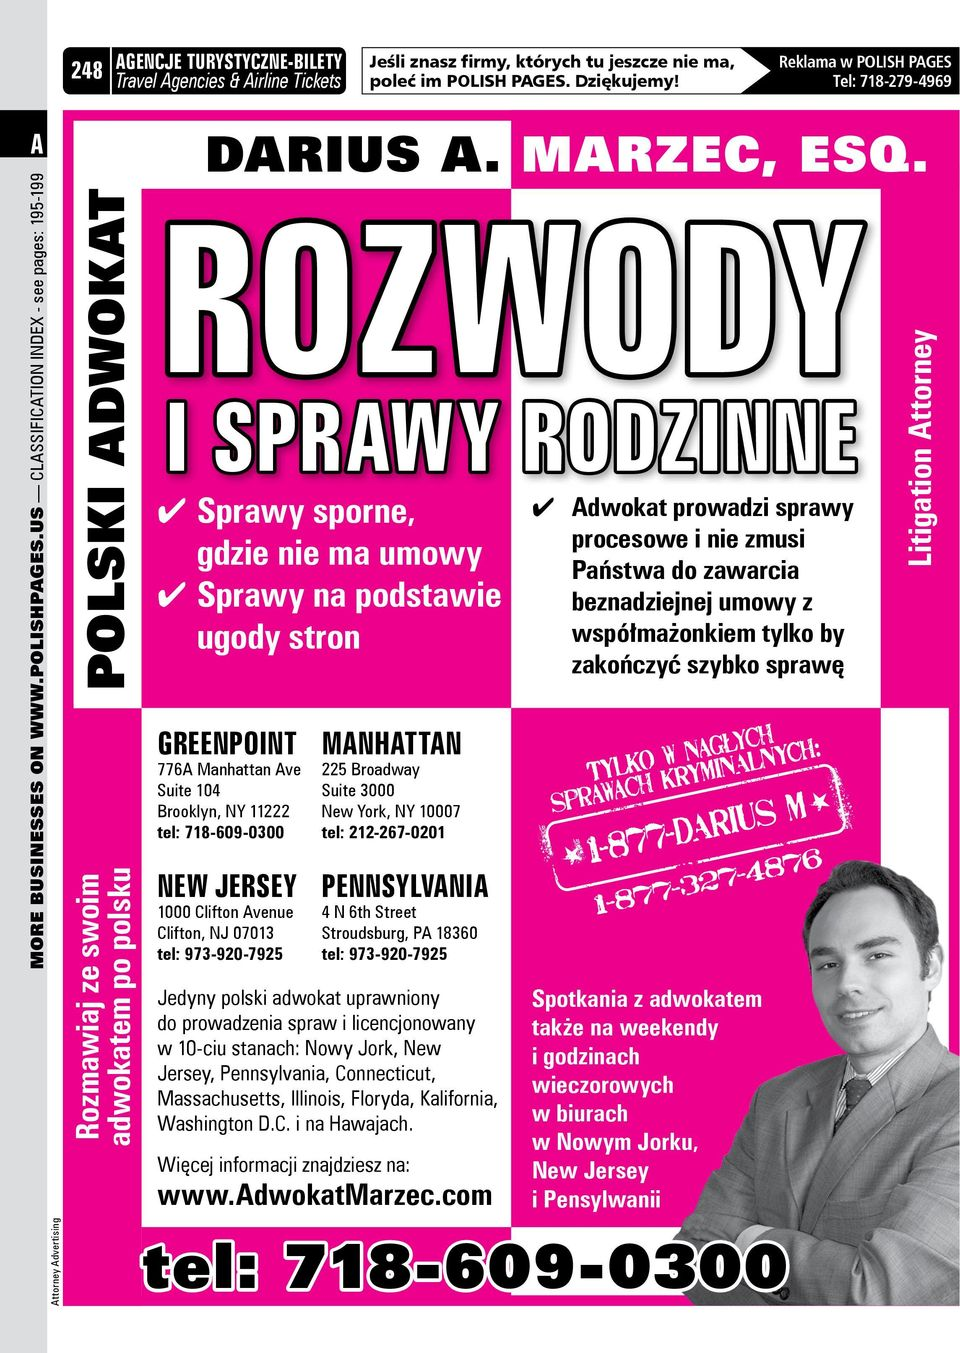 ROZWODY I SPRWY RODZINNE 4 Sprawy sporne, gdzie nie ma umowy 4 Sprawy na podstawie ugody stron GREENPOINT 776 Manhattan ve Suite 104 Brooklyn, NY 11222 tel: 718-609-0300 NEW JERSEY 1000 Clifton venue